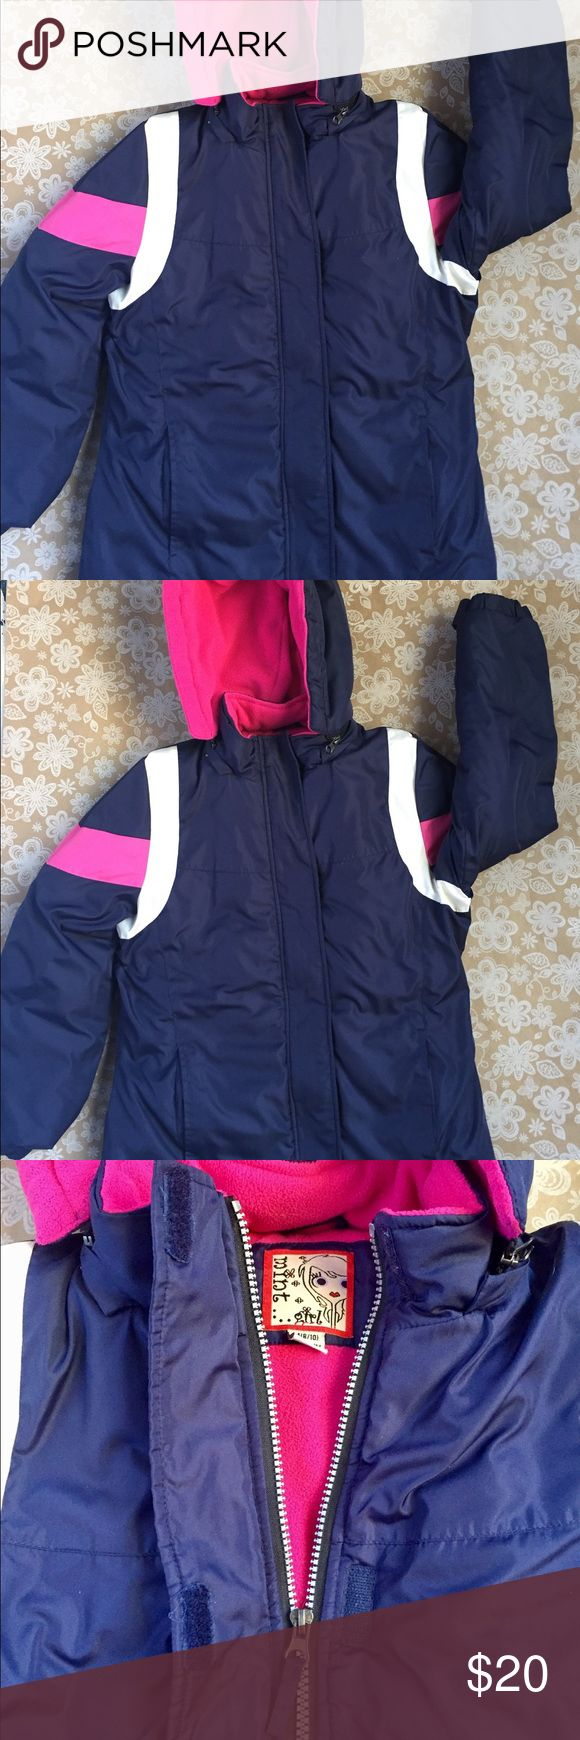 Mint Girl super warm puffer jacket girls M (8/10) Very warm puffer style jacket for girls size M (8/10) Dark blue with white and pink accents. Zipper closure with Velcro reenforcement. Velcro straps on sleeves help keep kids warm and snow out. Hood zips on/off Mint Jackets & Coats Puffers